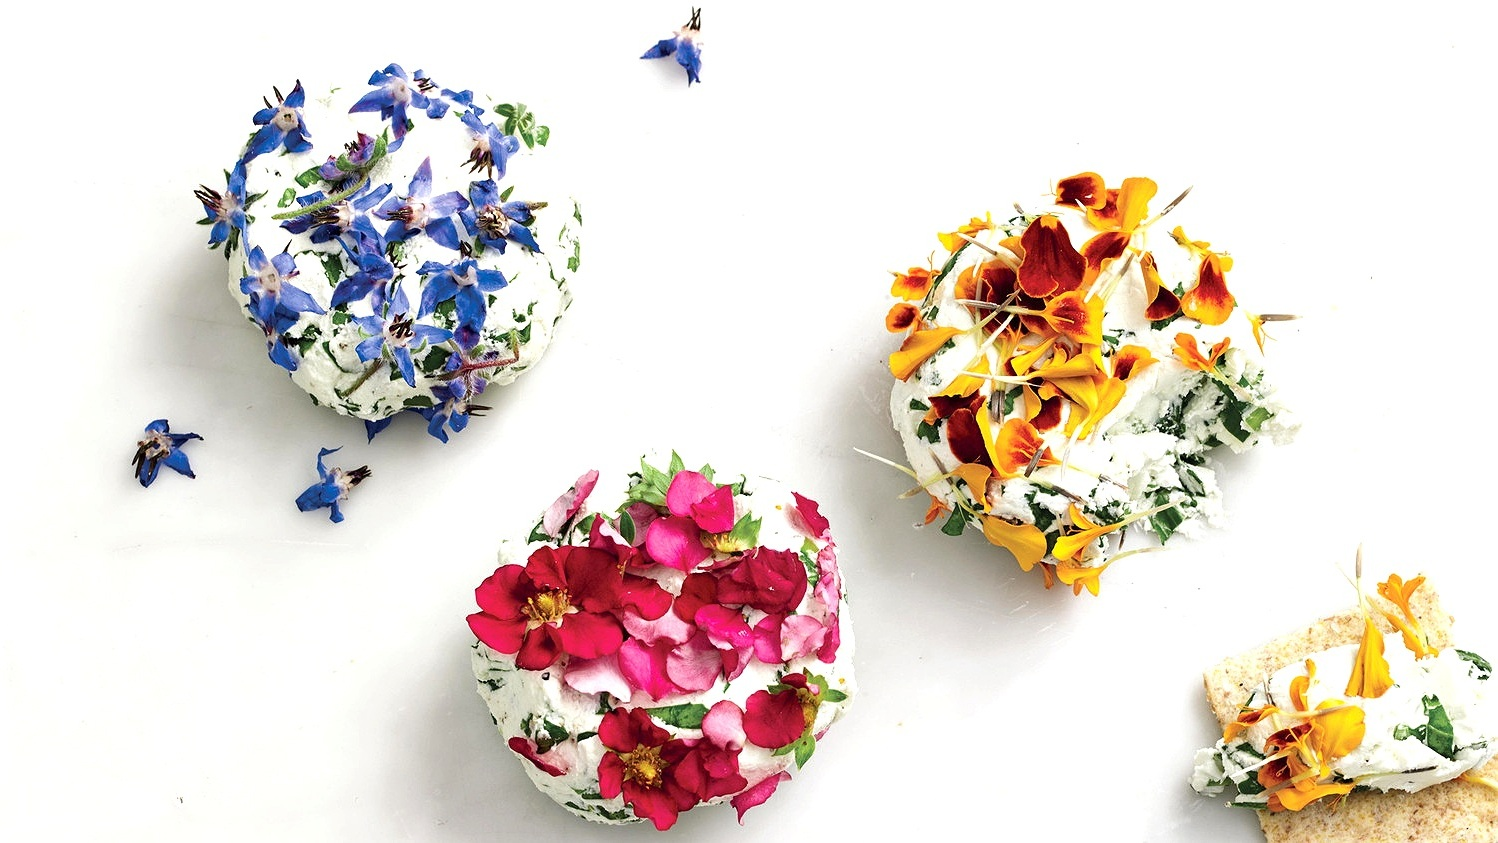 edible-flowers-cheese-9780307954442_horiz.jpg